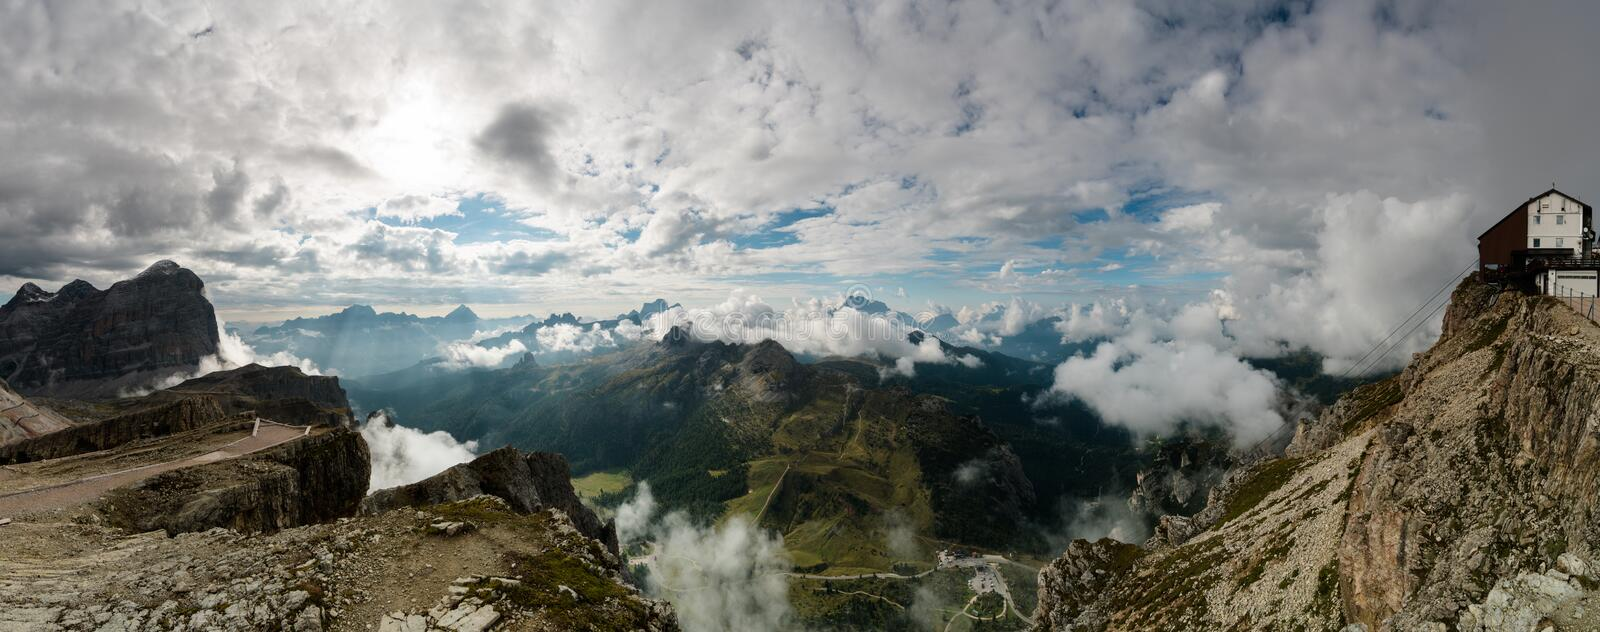 Beautiful panorama mountain landscape with a cable railway station and a great view of the Dolomites in Alta Badia and many hikers stock image